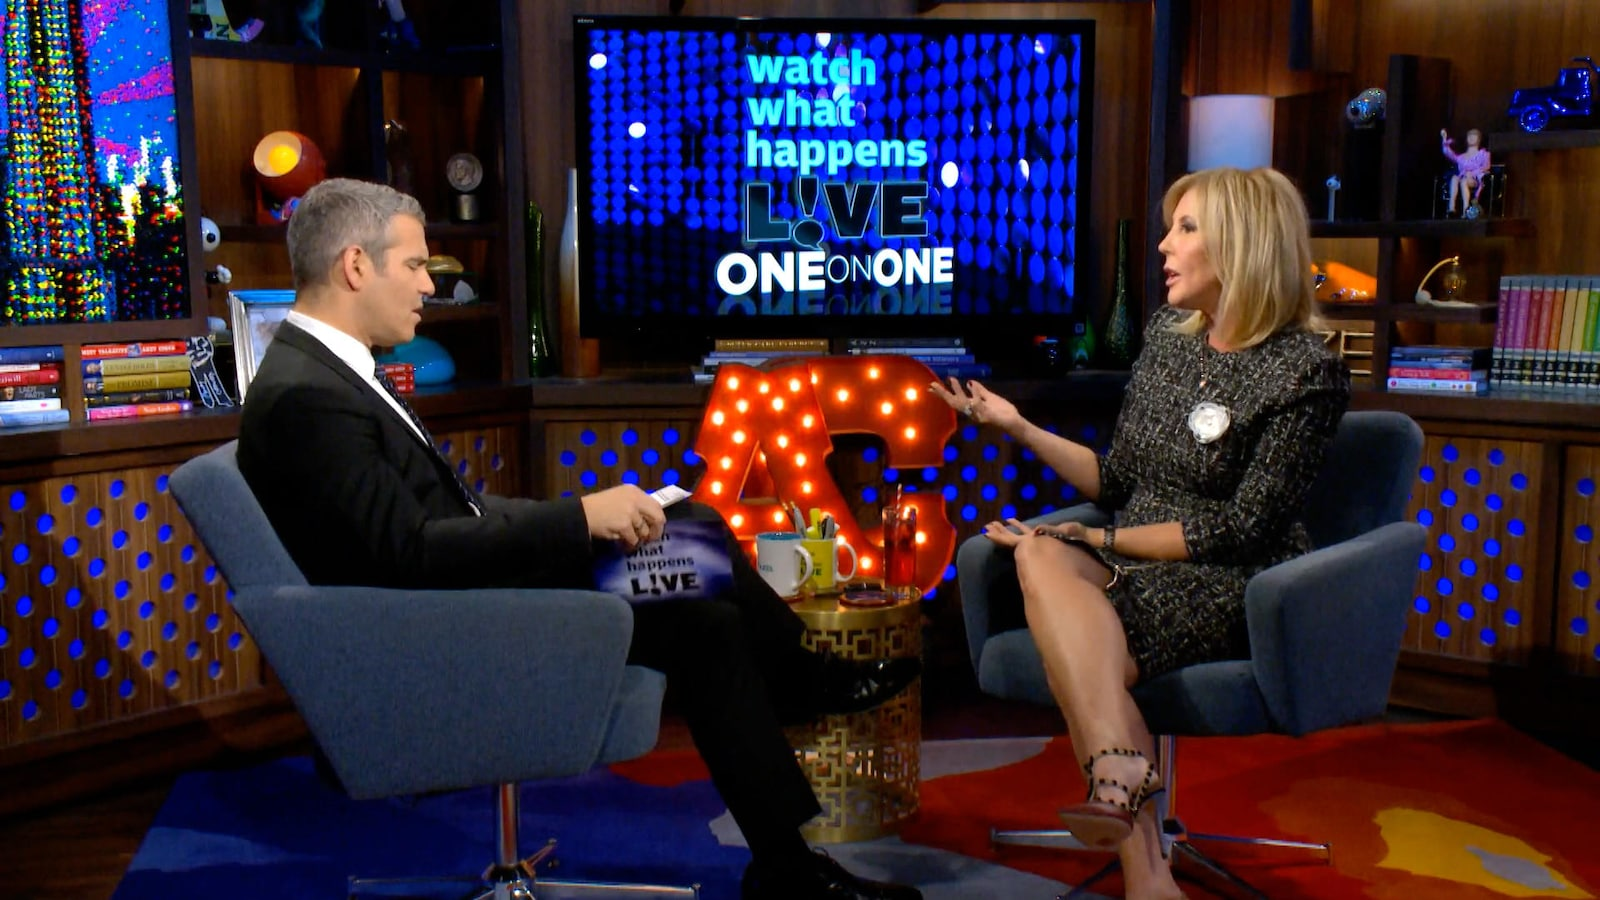 25. One-on-One with Vicki Gunvalson